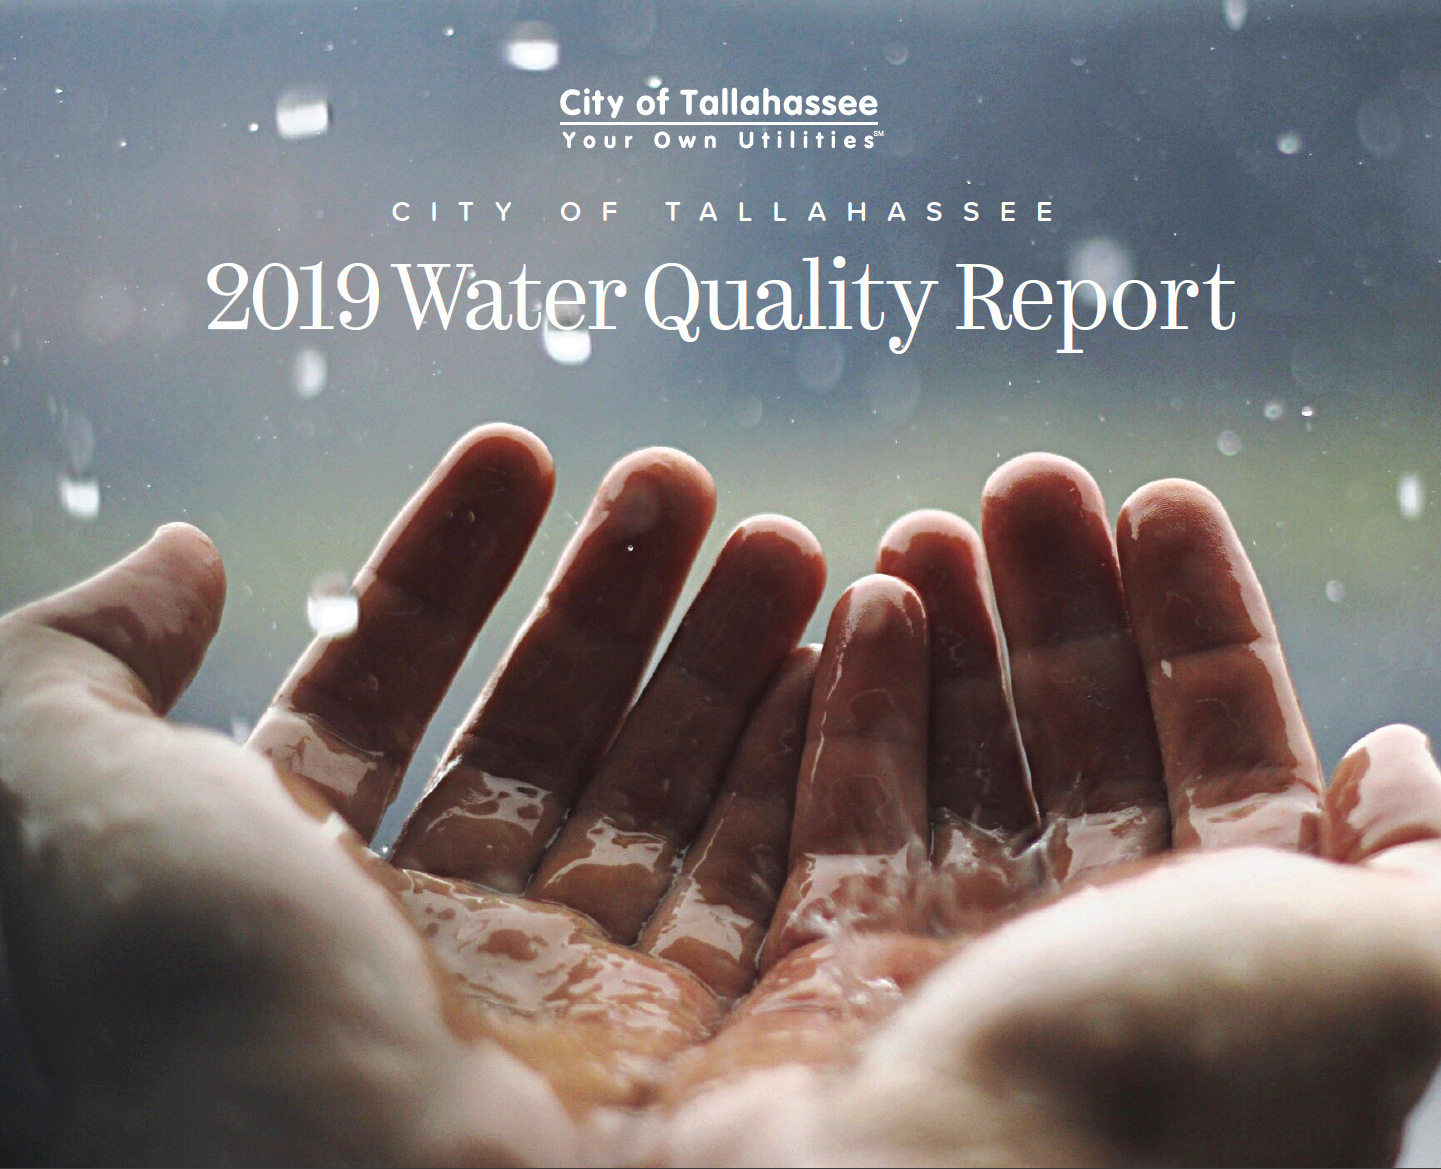 Water Quality Report | Your Own Utilities